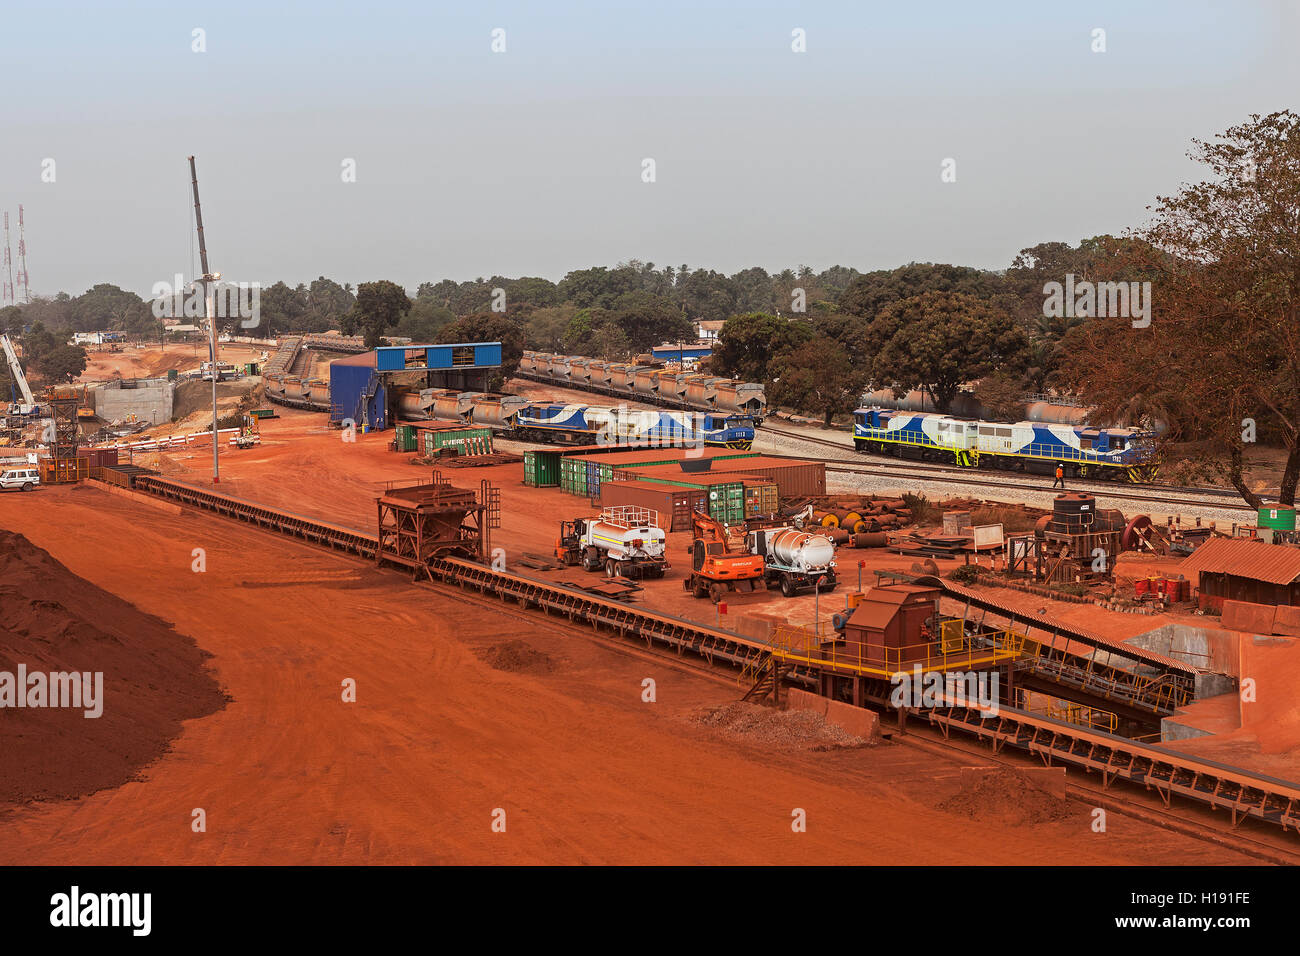 Port operations for managing and transporting iron ore. Marshalling yard and train unloading in dumping area. Conveyor - Stock Image